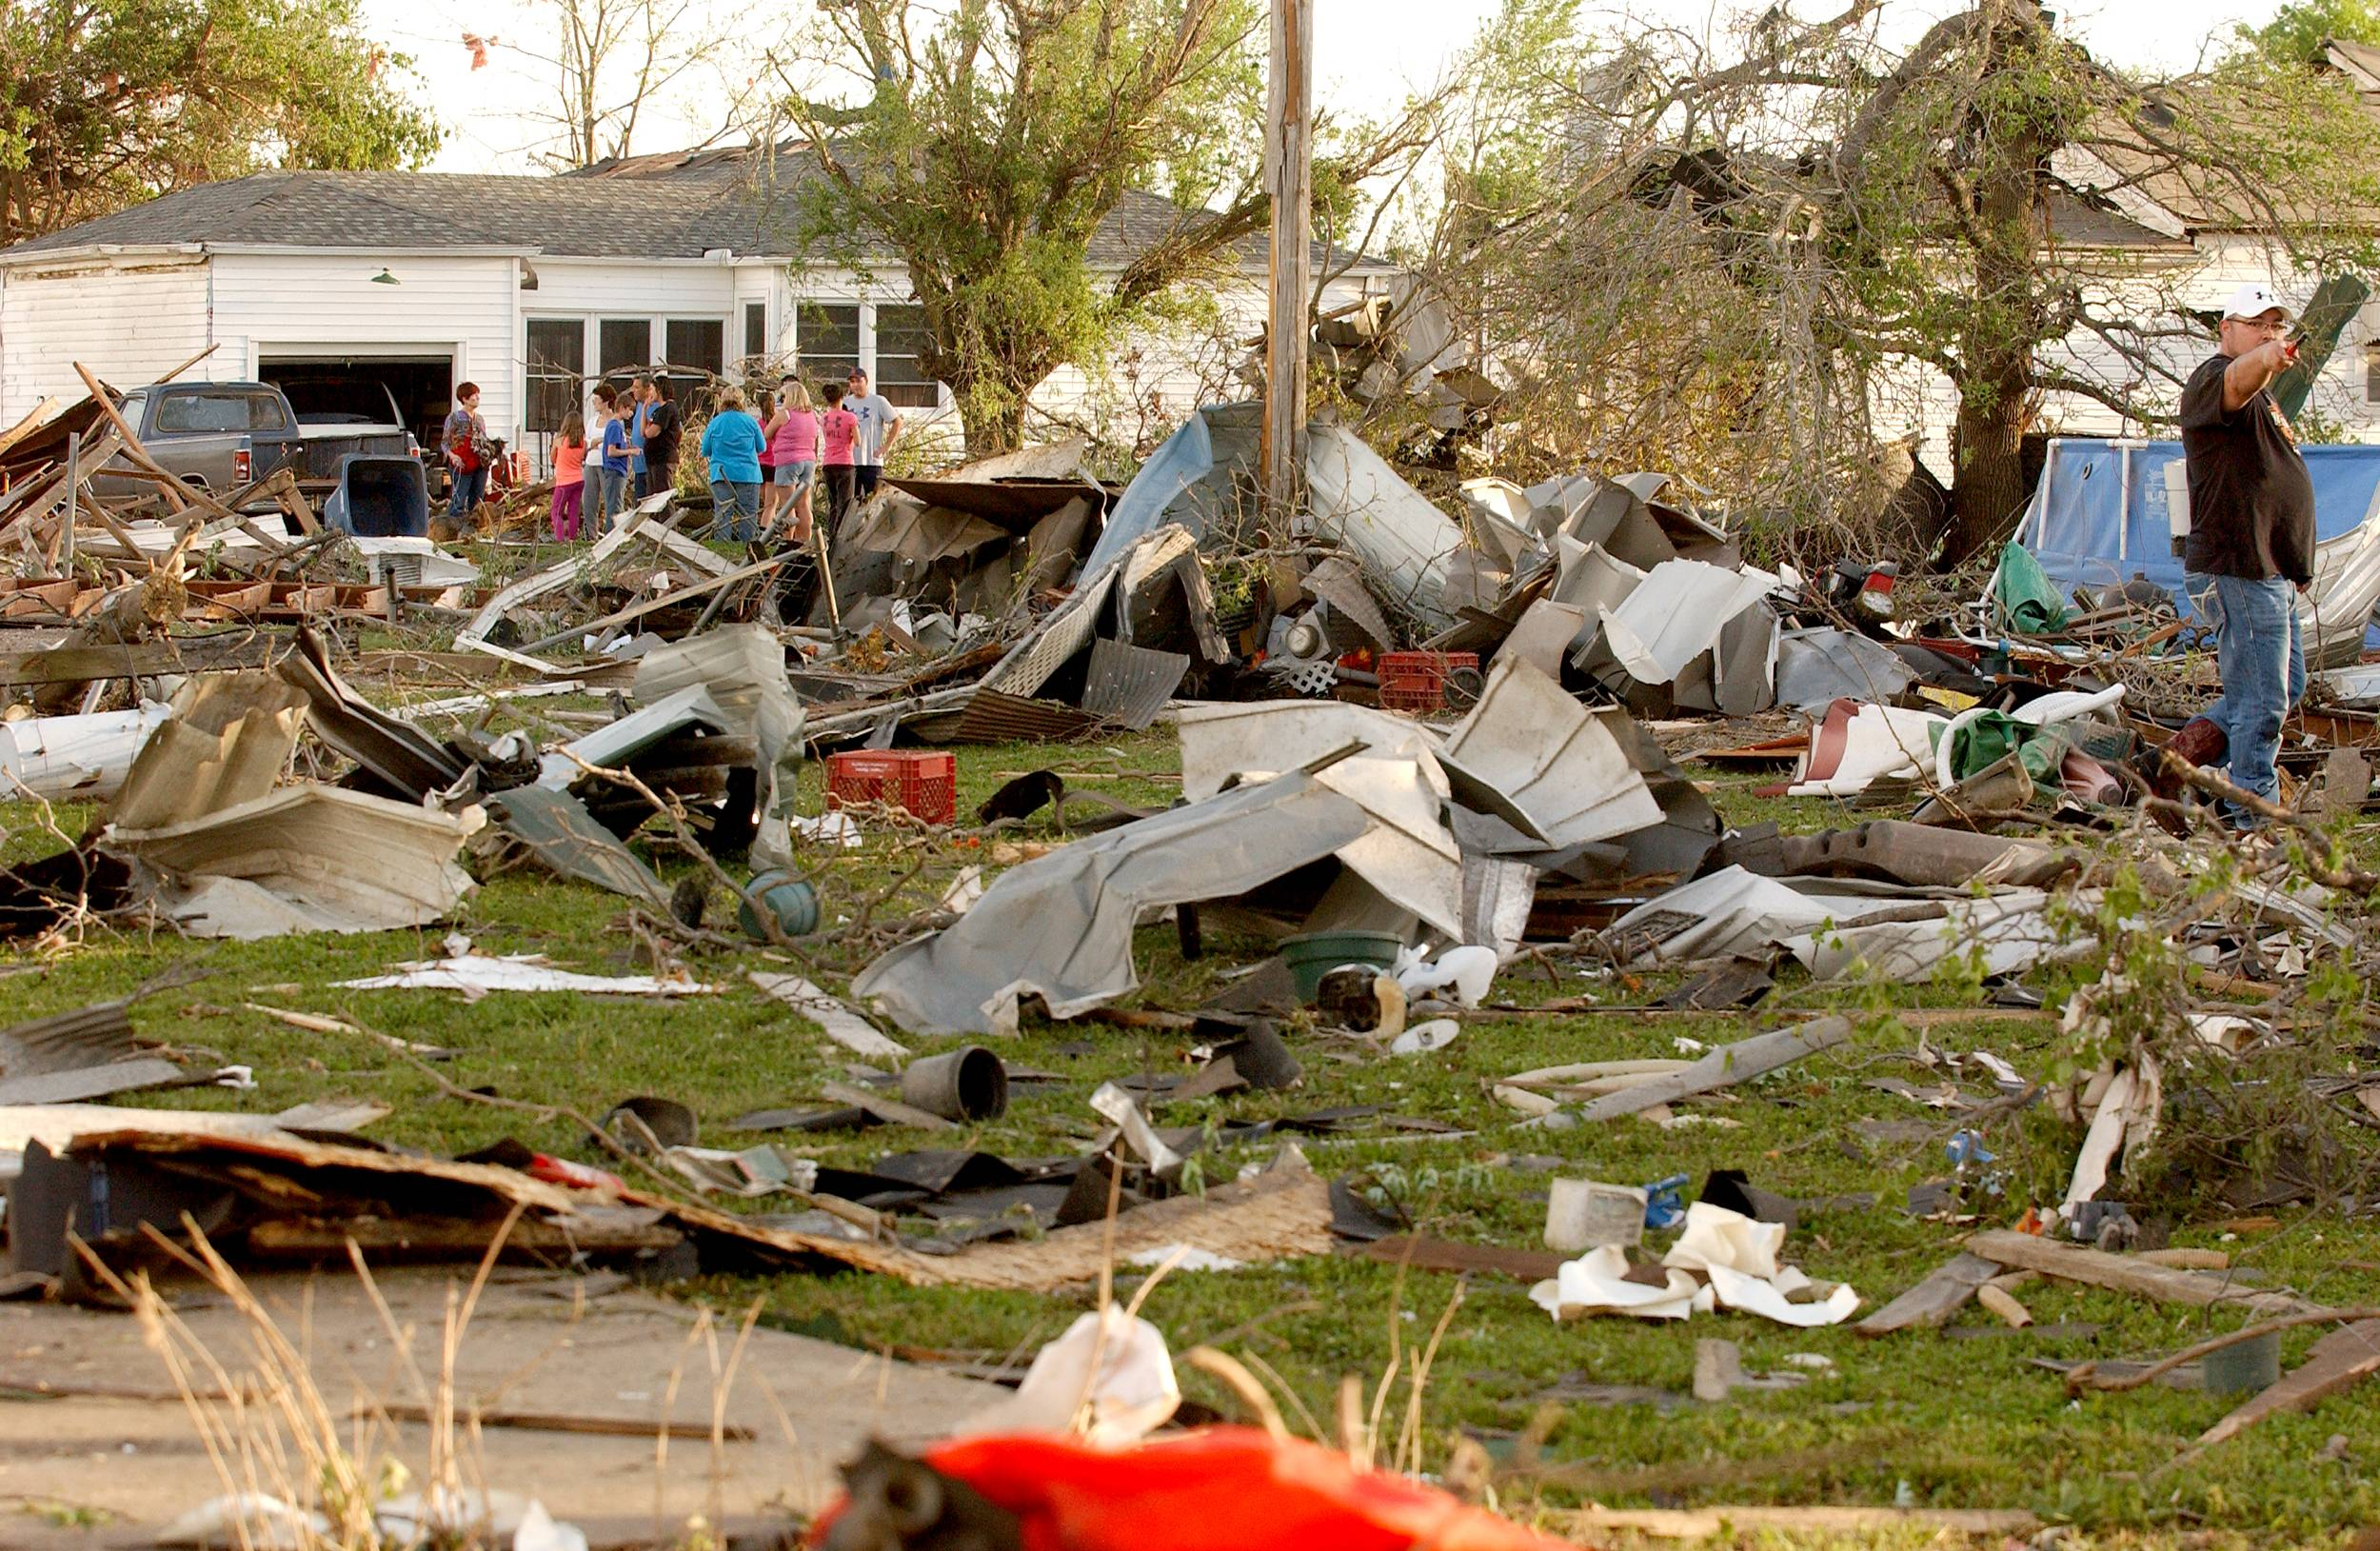 Quapaw, Okla., residents survey the damage in a residential neighborhood struck by a tornado on Sunday evening, April 27, 2014. A powerful storm system rumbled through the central and southern United States on Sunday, spawning a massive tornado that carved path of destruction through the northern Little Rock suburbs and another twister that killed two people in Oklahoma and injured others in Kansas.